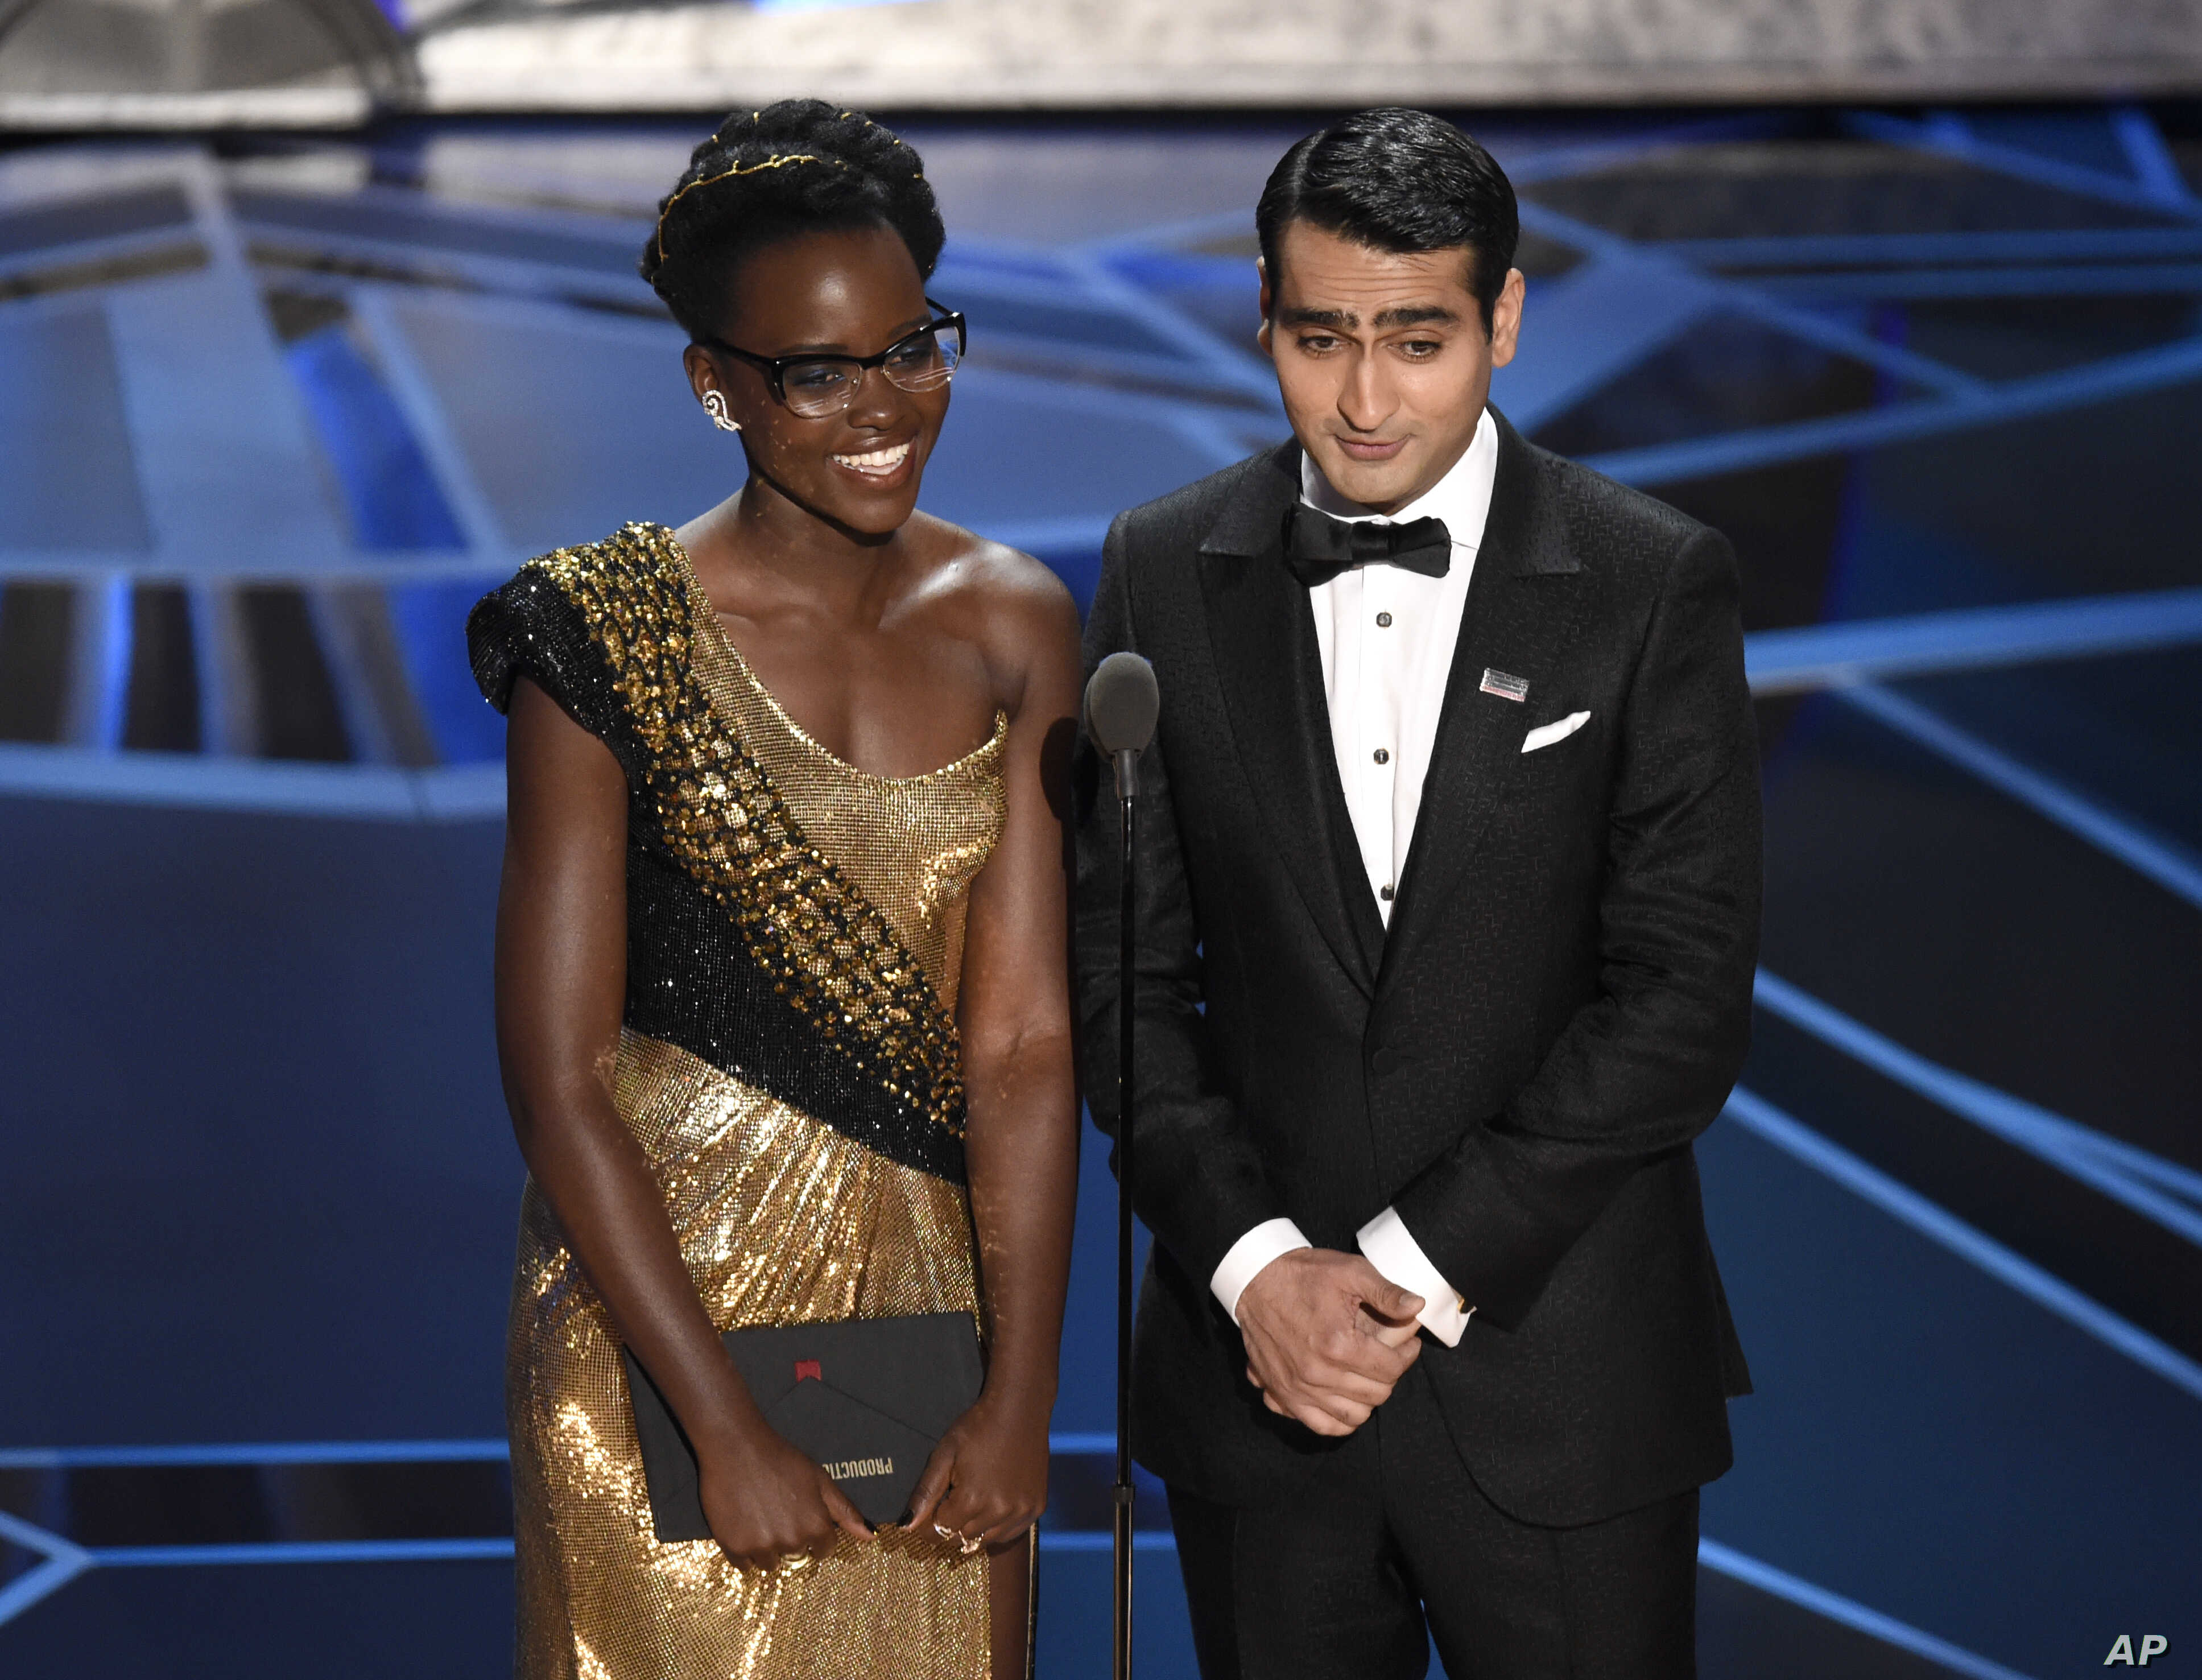 Lupita Nyong'o, left, and Kumail Nanjiani present the award for best production design at the Oscars, March 4, 2018.